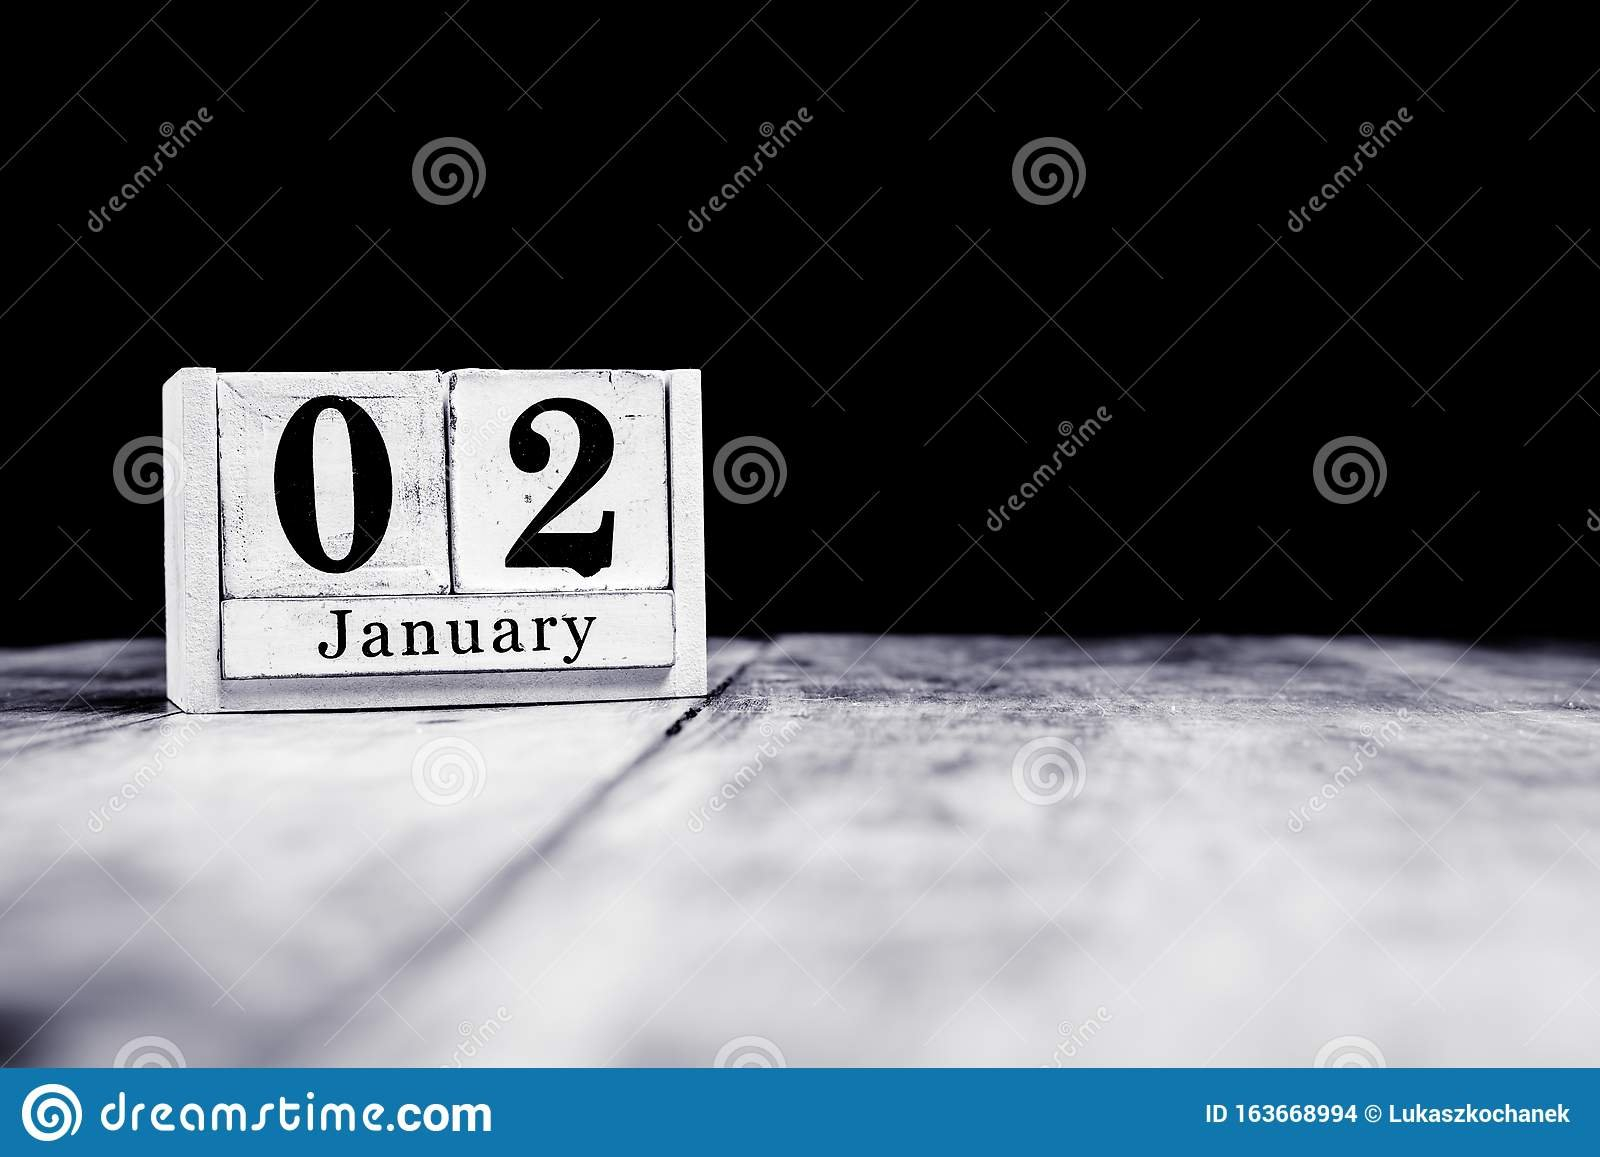 January 2Nd, 2 January, Second Of January, Calendar Month Image Of A Calendar With 2Nd Of Month Highlighted